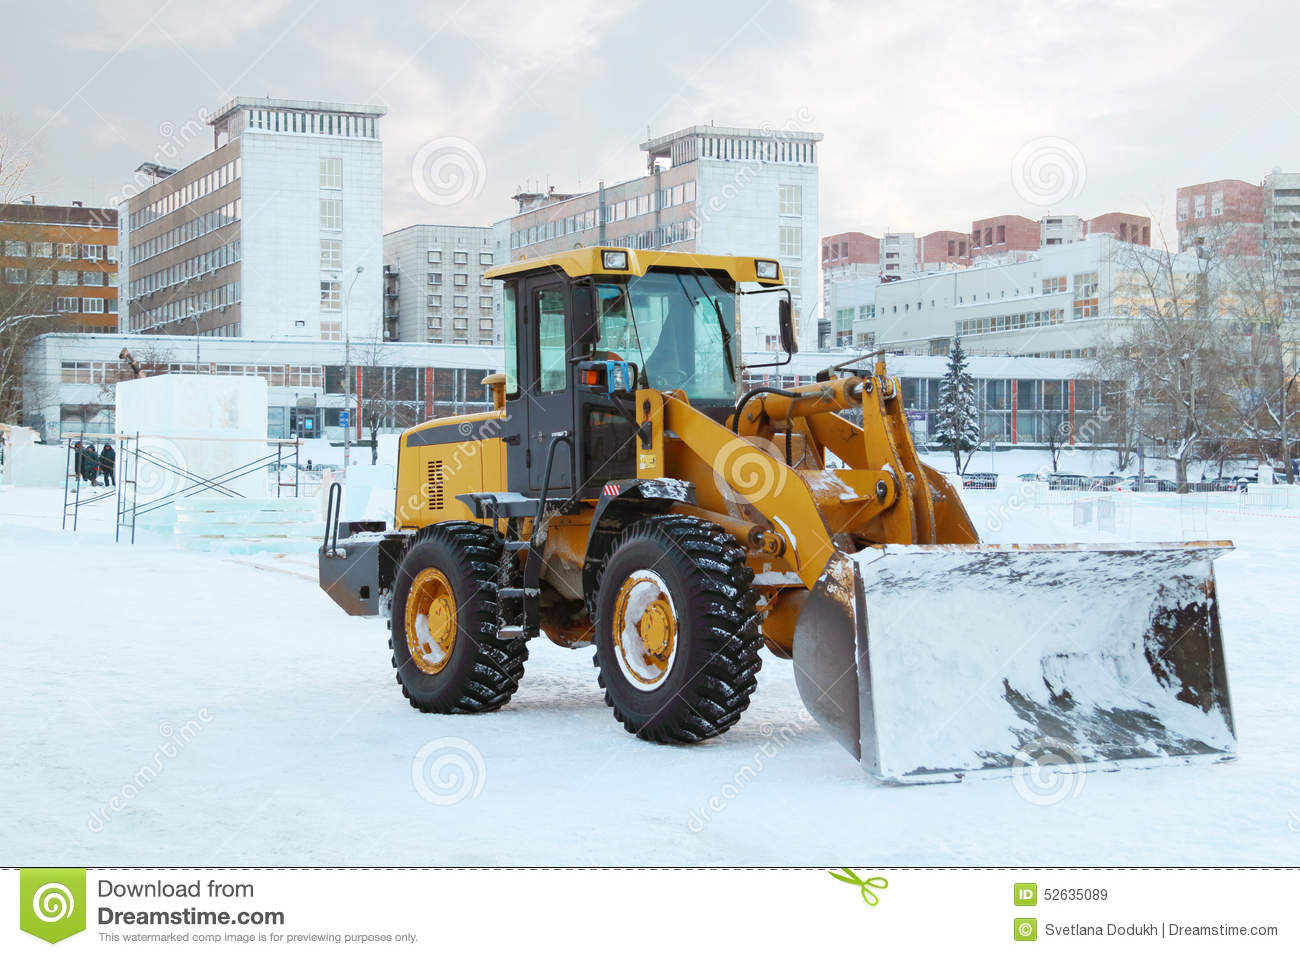 Snow removal in Russian: tank instead of bulldozer